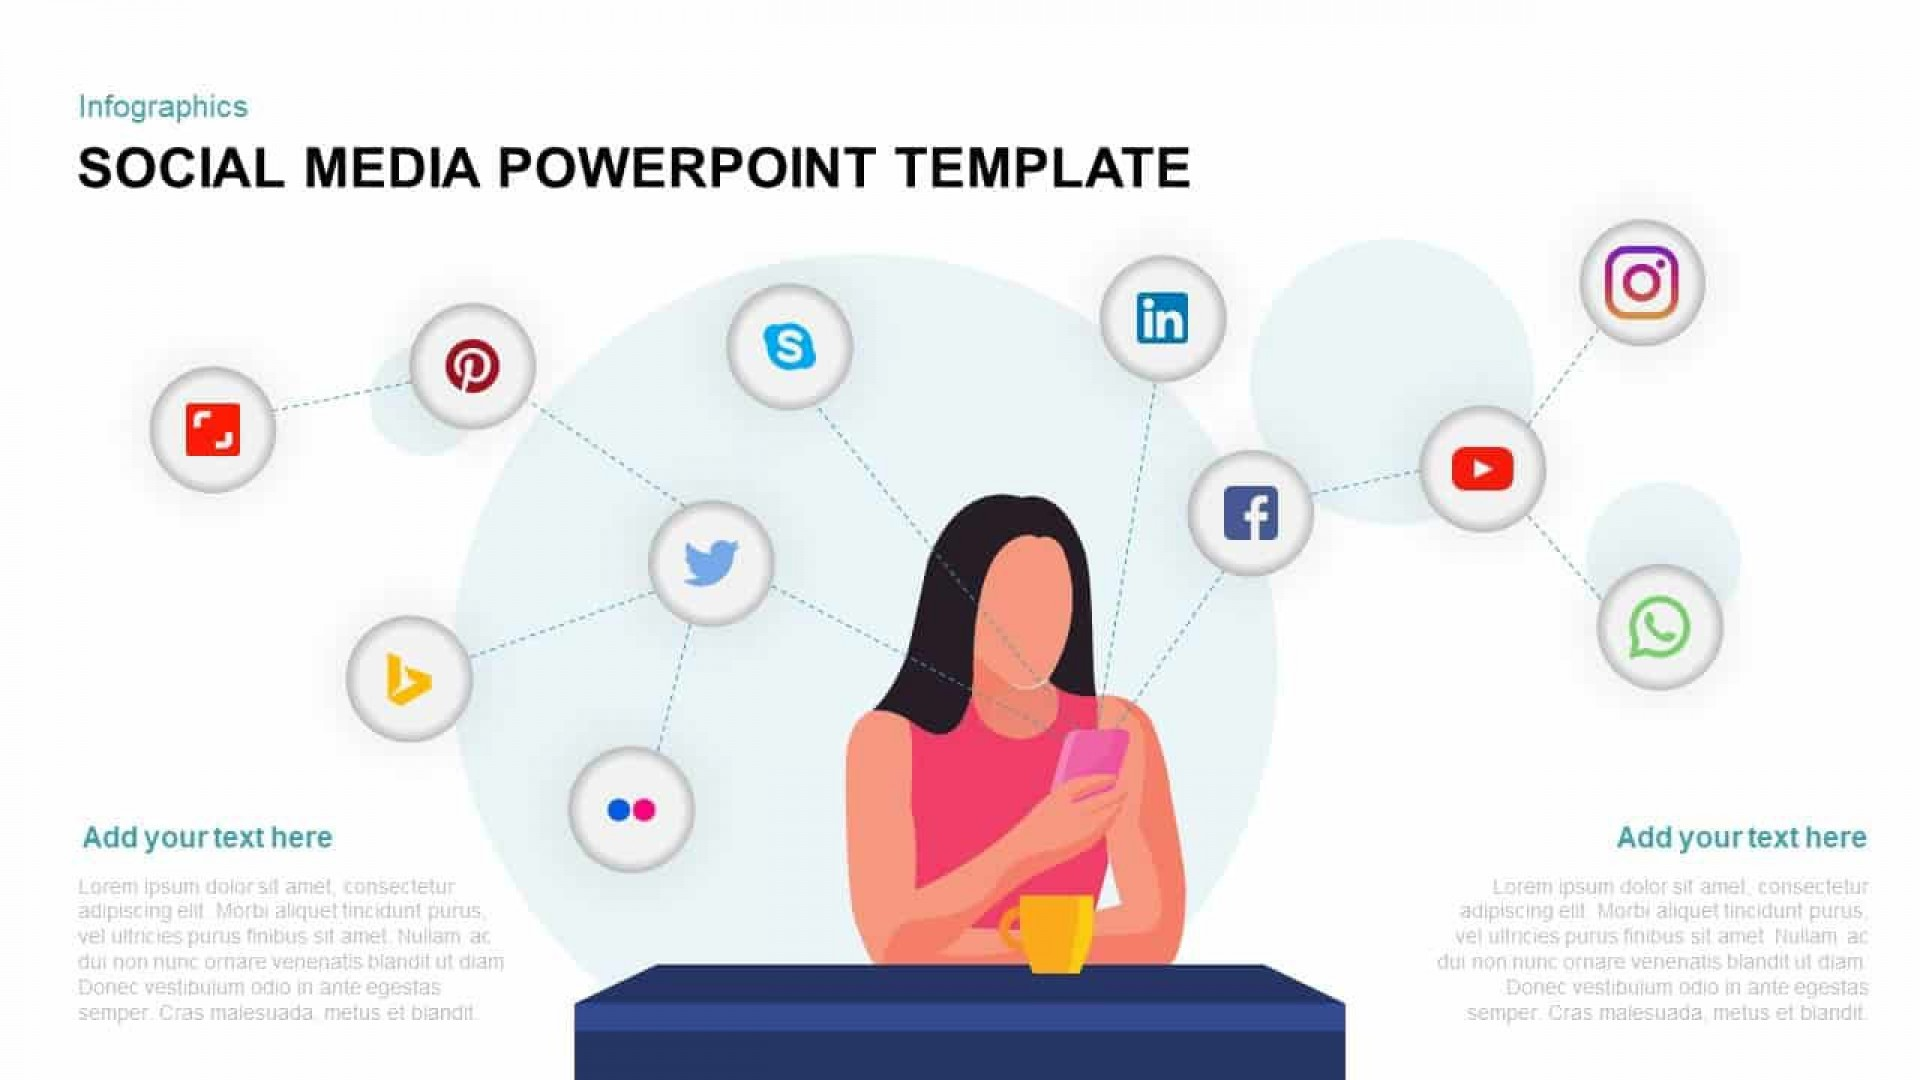 000 Incredible Social Media Powerpoint Template Free Idea  Strategy Trend 2017 - Report1920